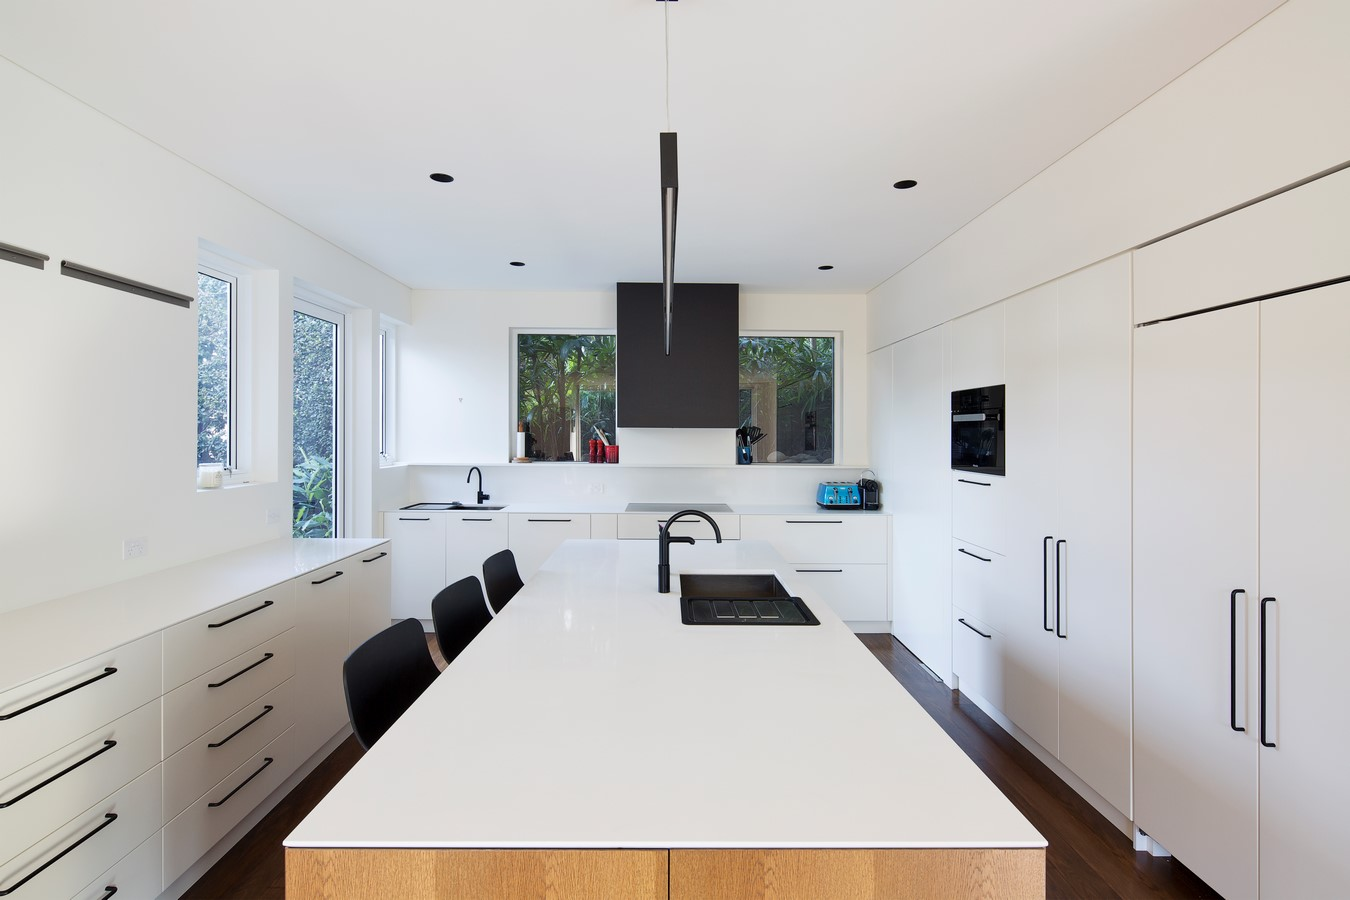 balmoral residence by buck&simple doers of stuff - Sheet2